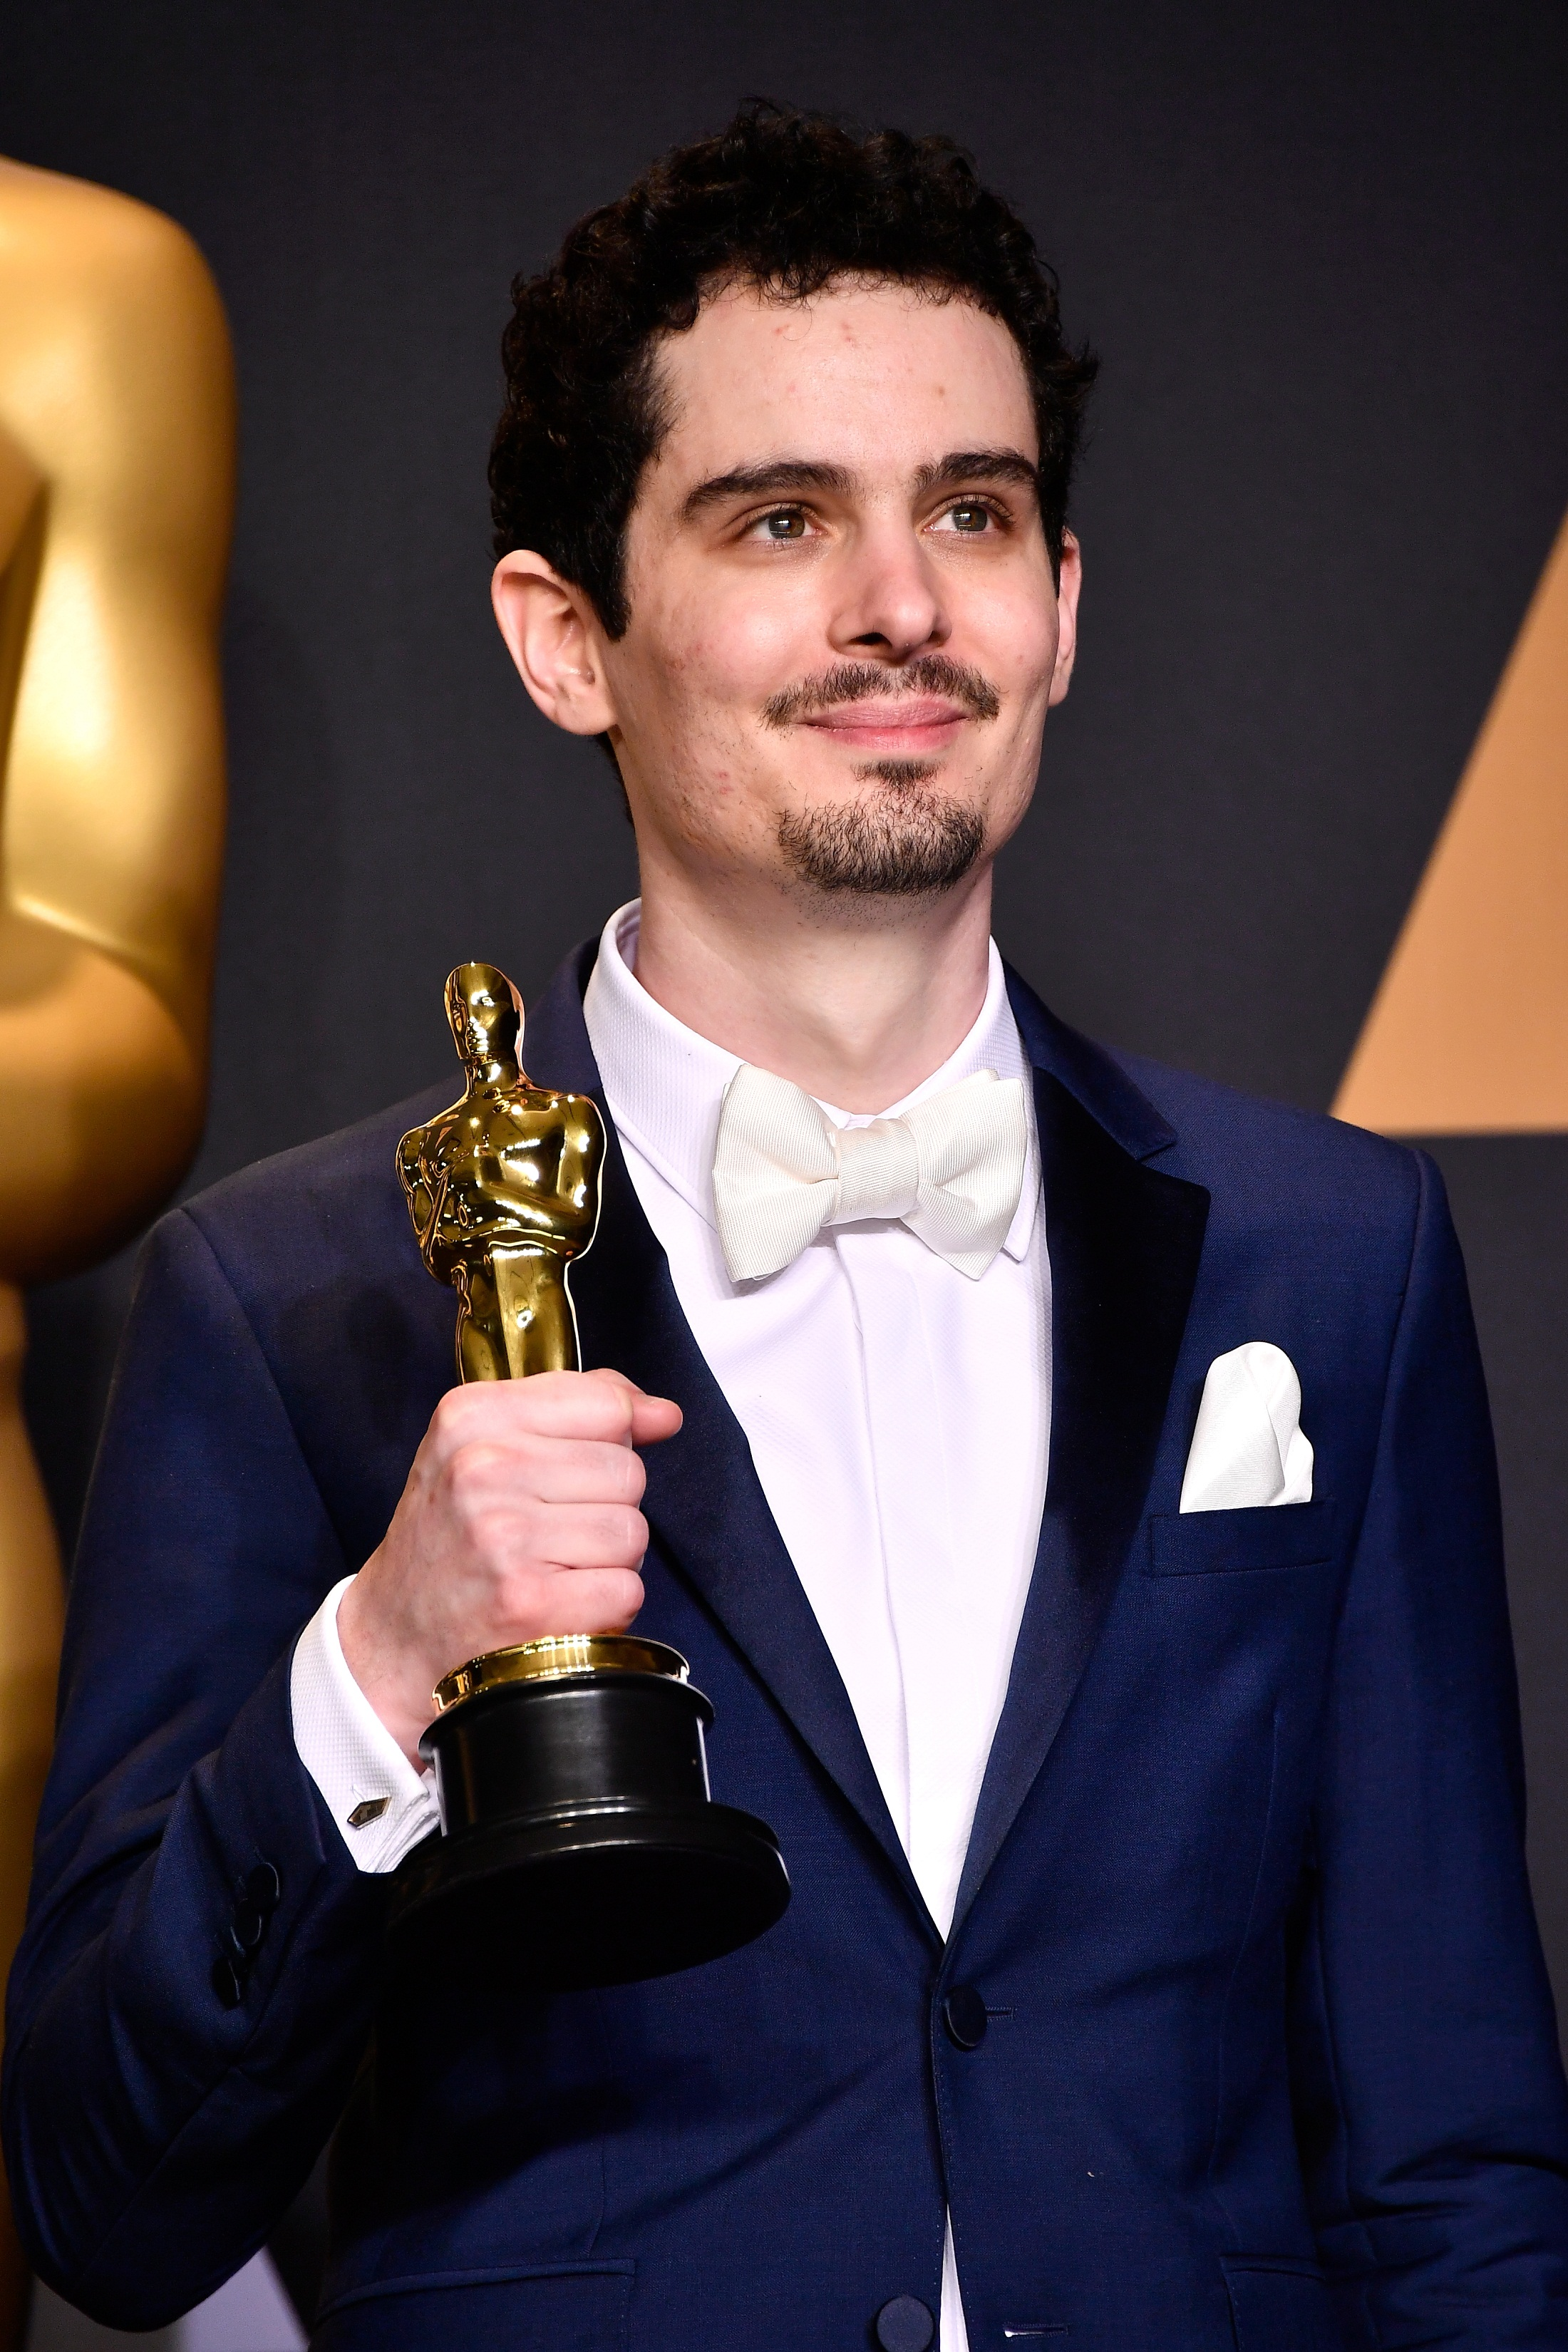 HOLLYWOOD, CA - FEBRUARY 26: Director Damien Chazelle, winner of Best Director for 'La La Land' poses in the press room during the 89th Annual Academy Awards at Hollywood & Highland Center on February 26, 2017 in Hollywood, California. Frazer Harrison/Getty Images/AFP